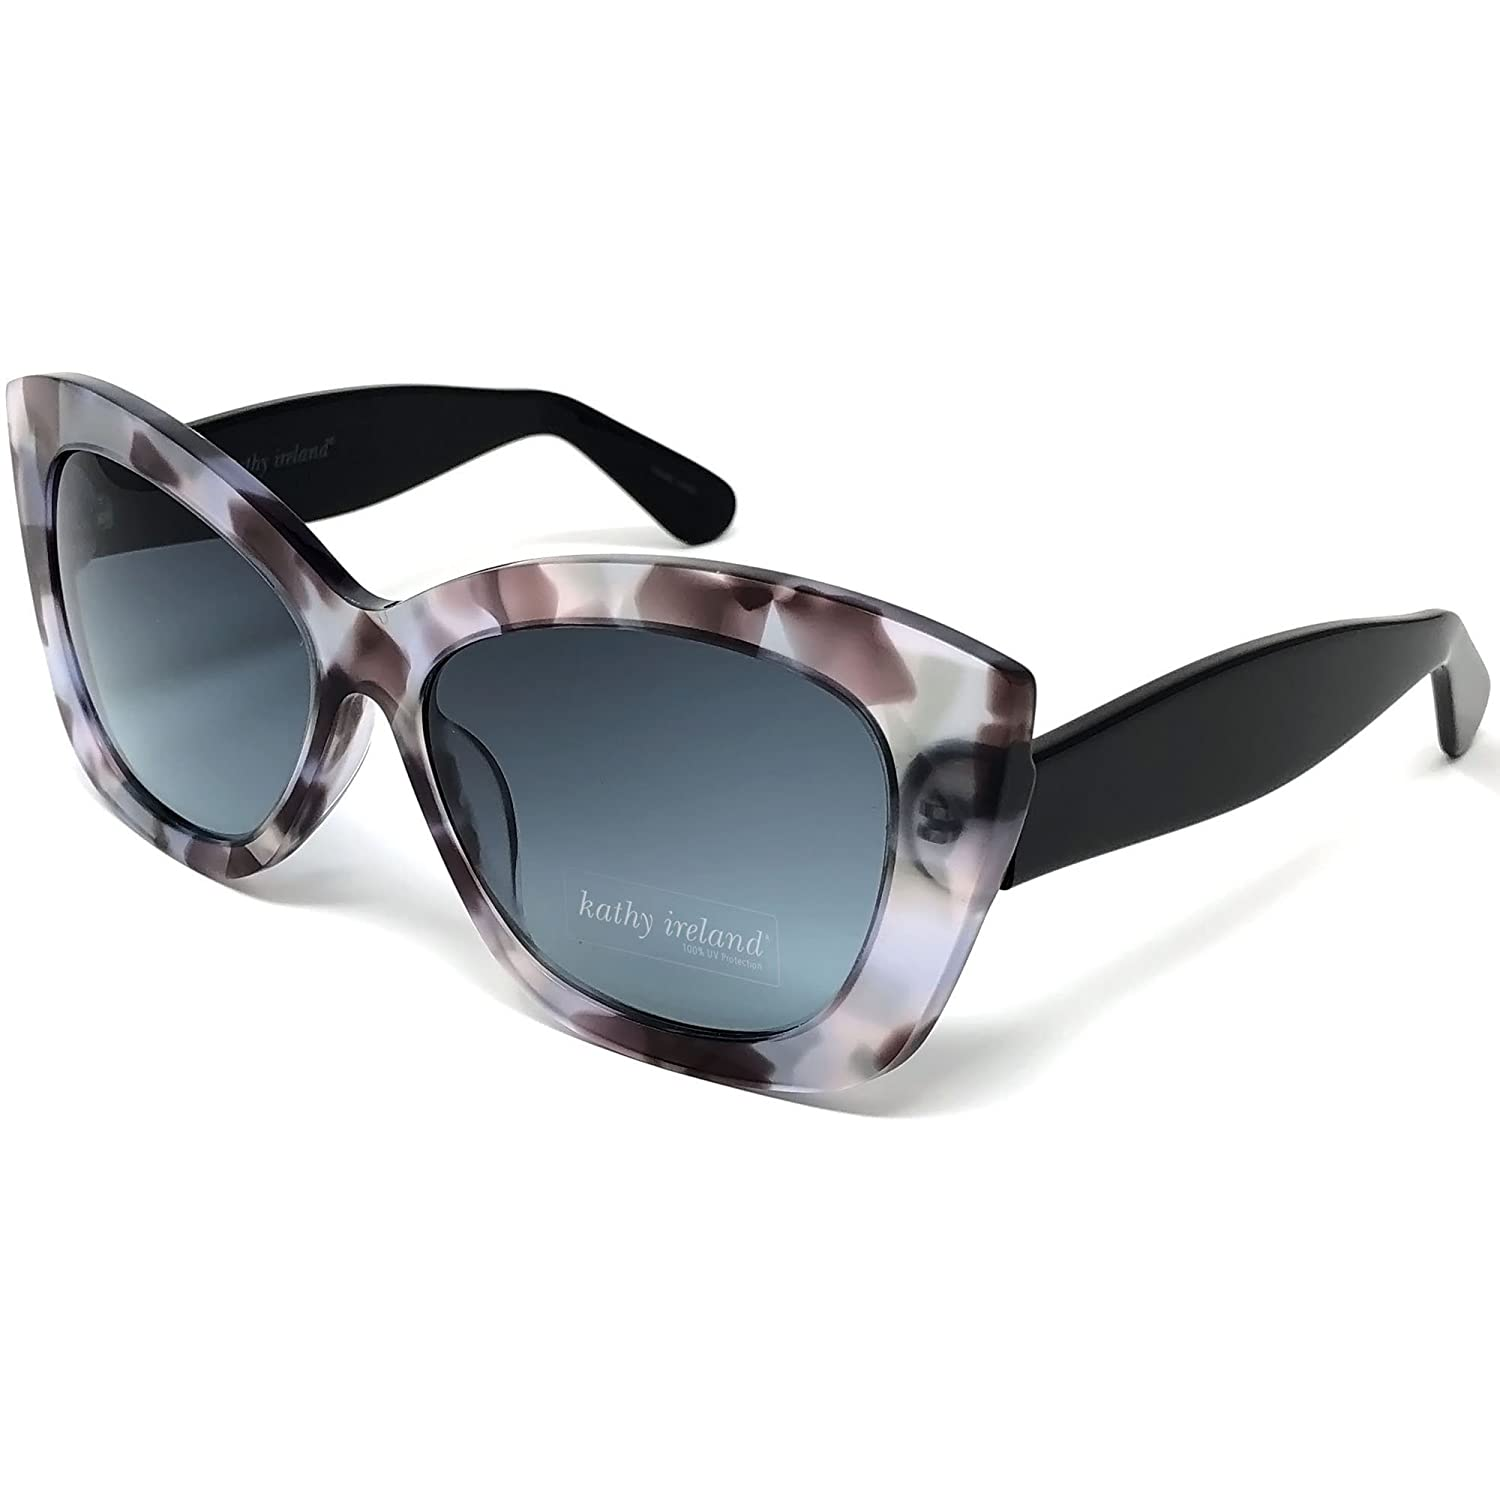 12b3046162 Amazon.com  Kathy Ireland Womens Acetate Flecked Cat-eye Sunglasses with  Ivory and Black Temple Frame and Gradient Smoke Lens  Sports   Outdoors